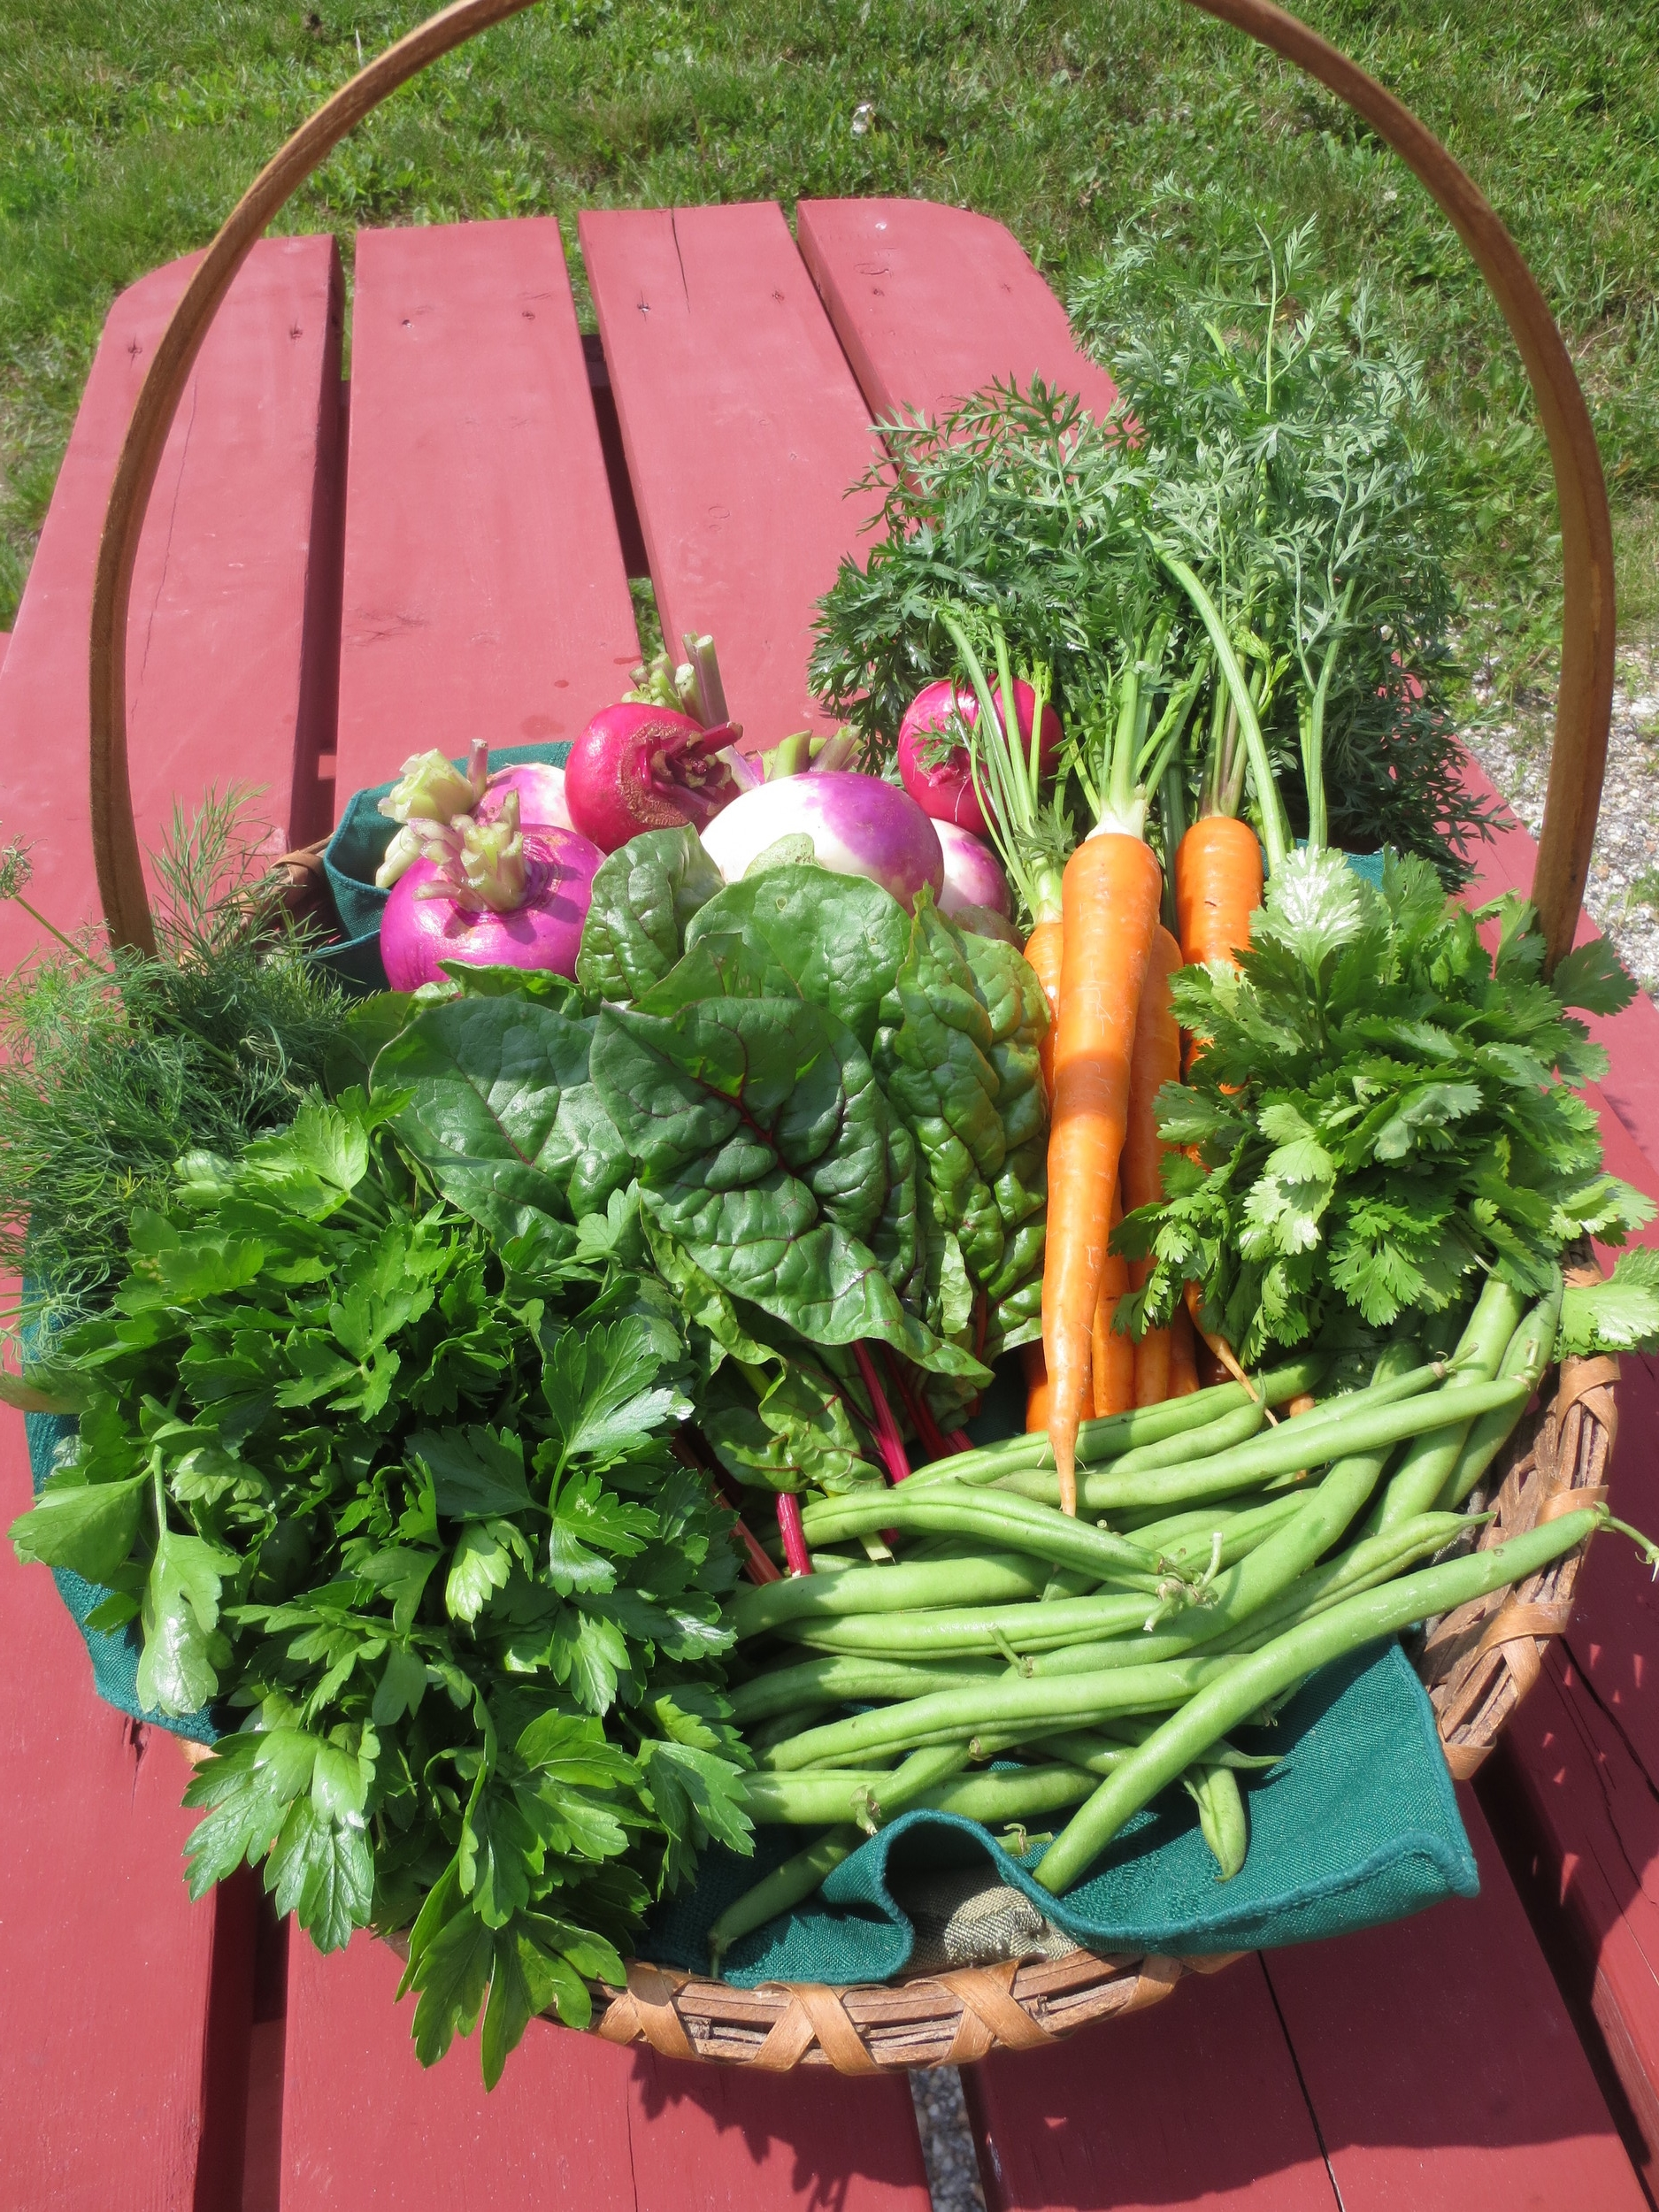 A taste of the produce available this week at the farmstand- carrots, beans, chard, herbs & turnips.